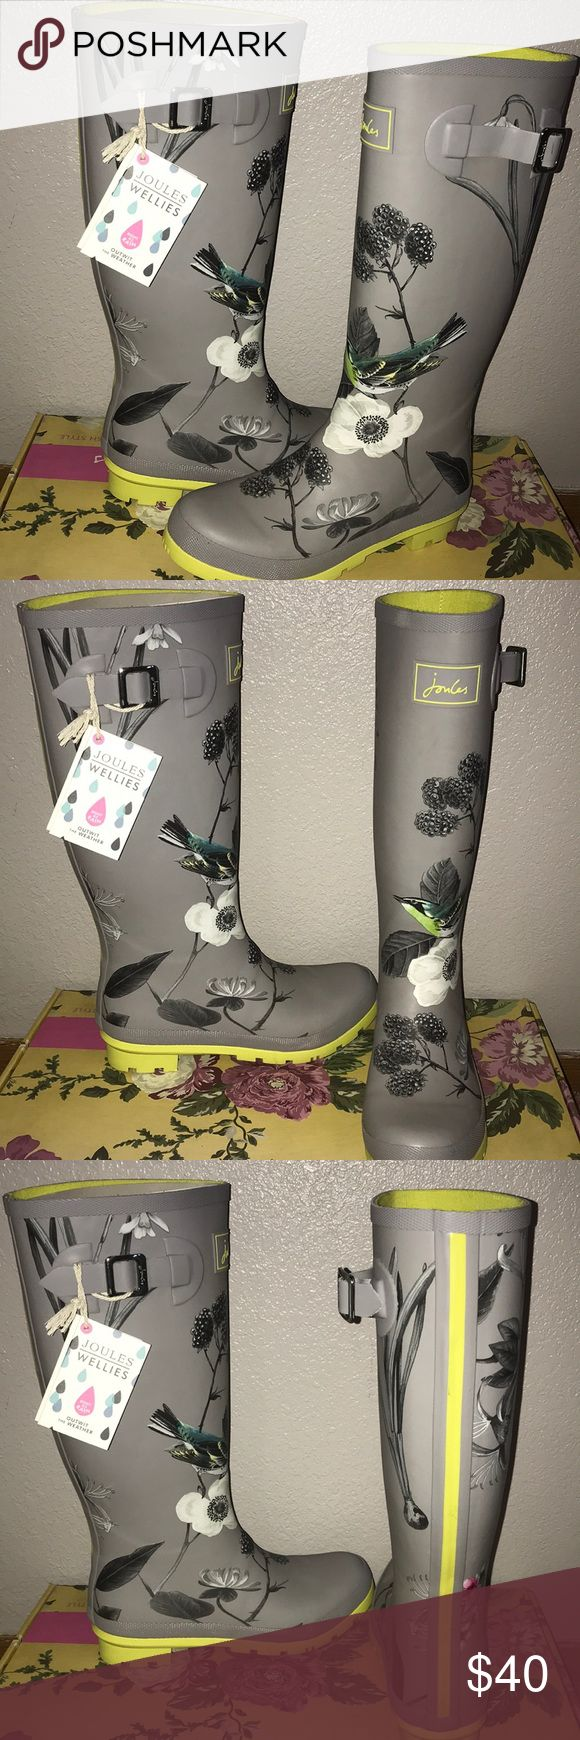 JOULES WELLIES NEVER WORN beauuutiful rain boots 🌧 box included with purchase 😊 Joules Shoes Winter & Rain Boots